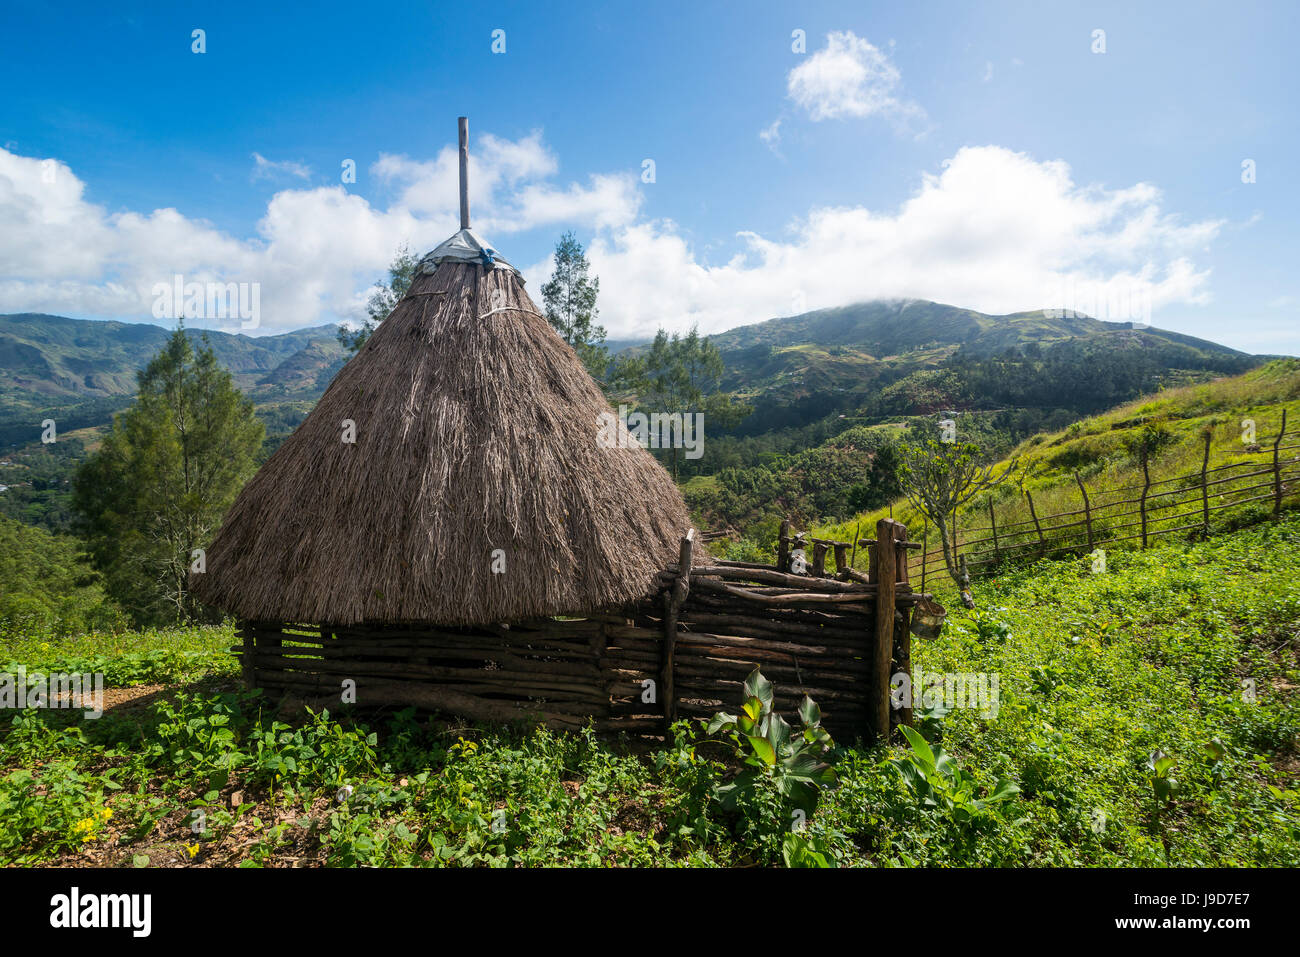 Traditional house in the mountains, Maubisse, East Timor, Southeast Asia, Asia - Stock Image